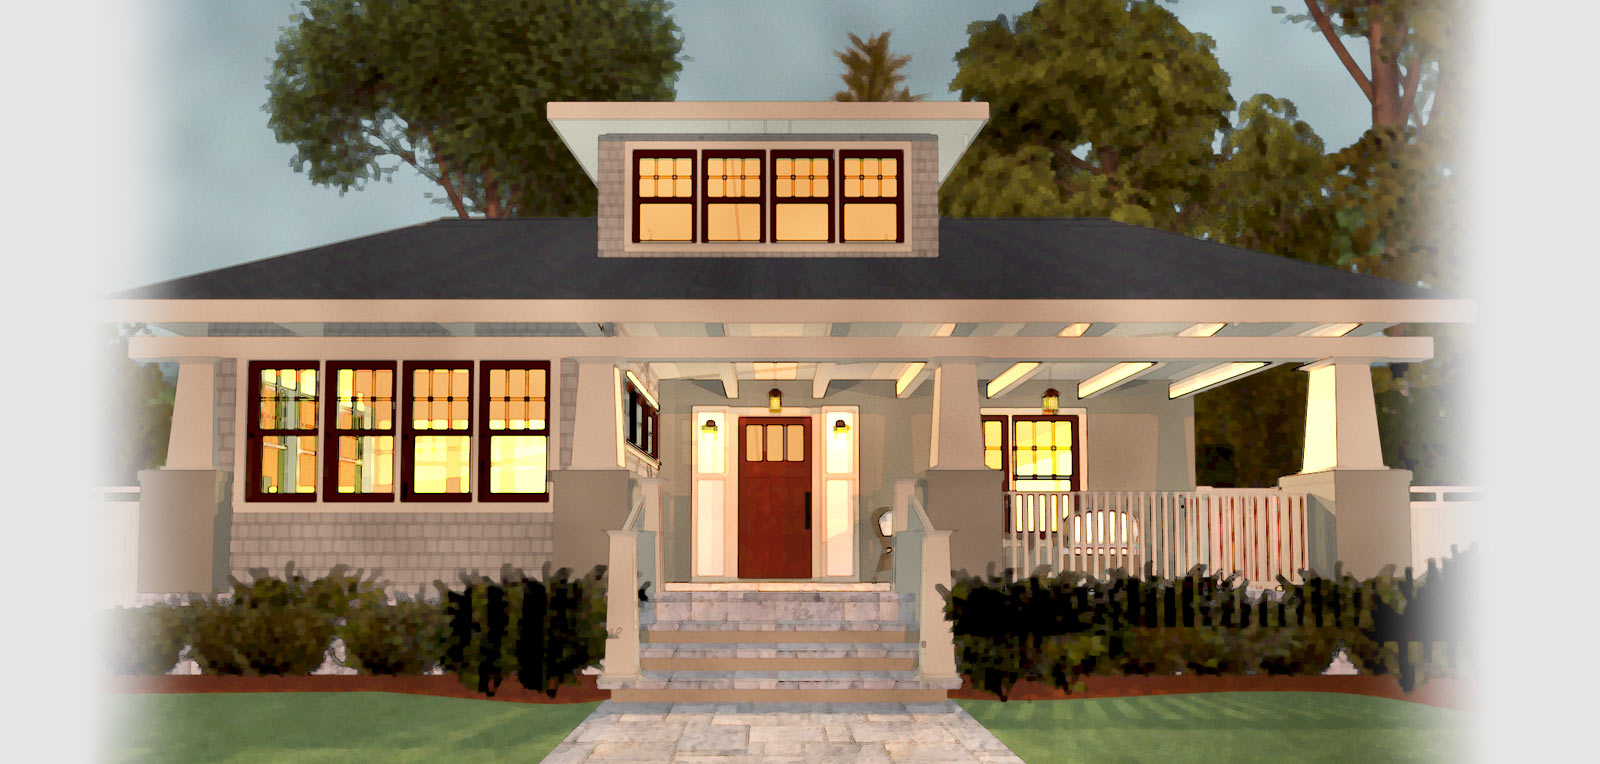 Home Designer Software for Home Design & emodeling projects - ^